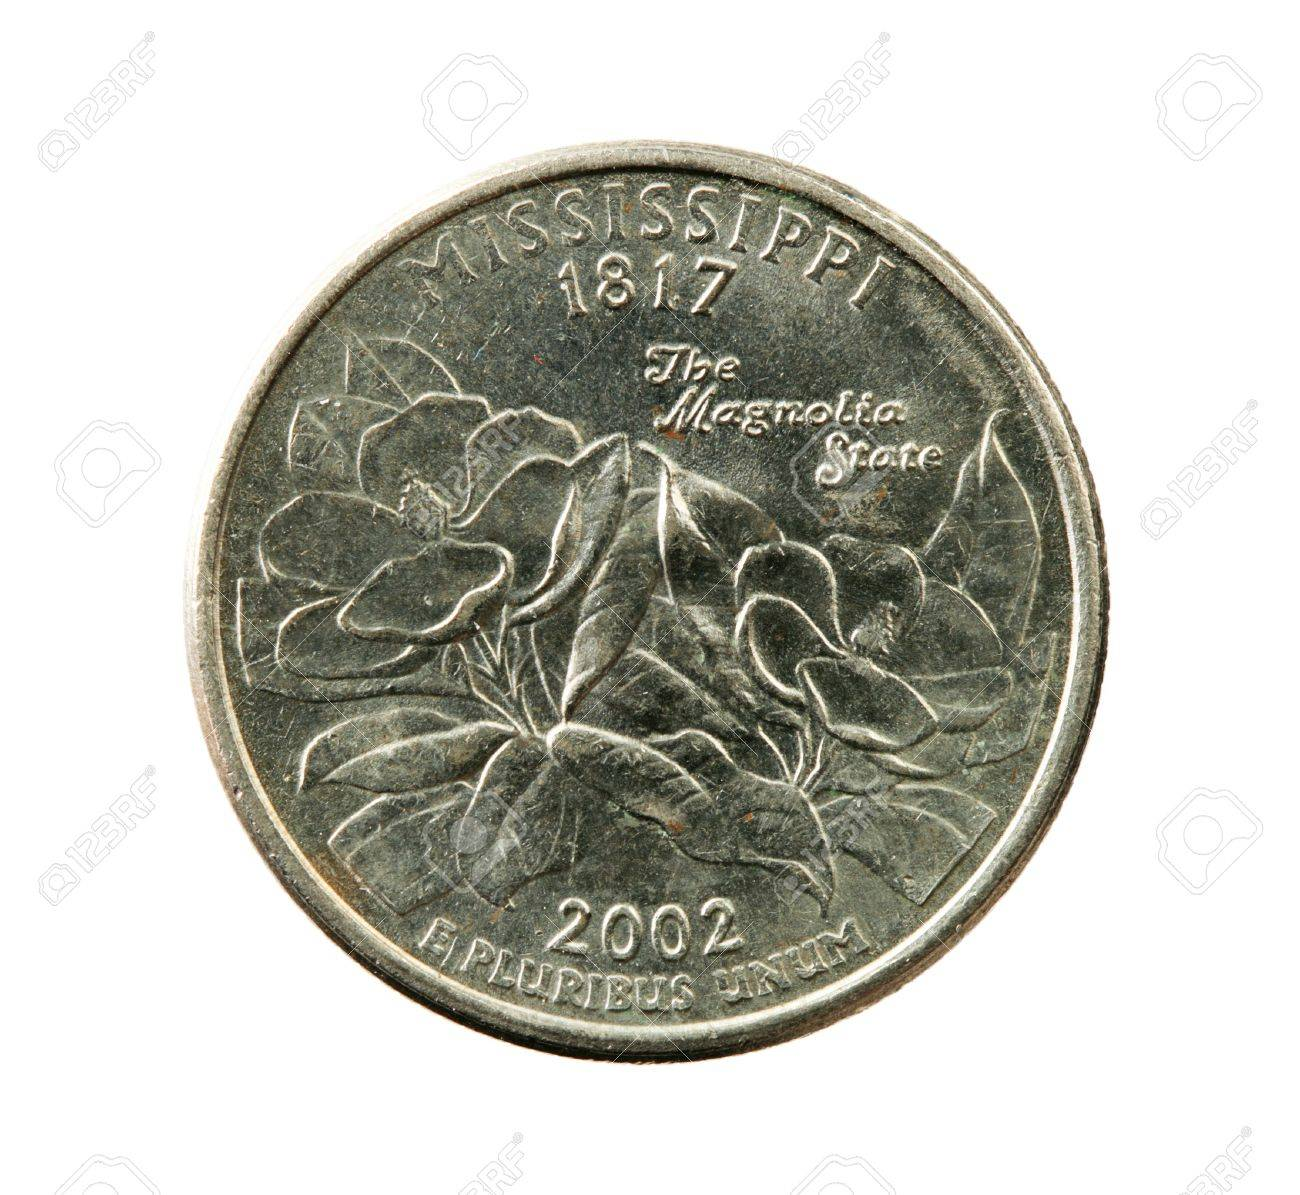 Mississippi state quarter coin isolated on white background Stock Photo - 7461597